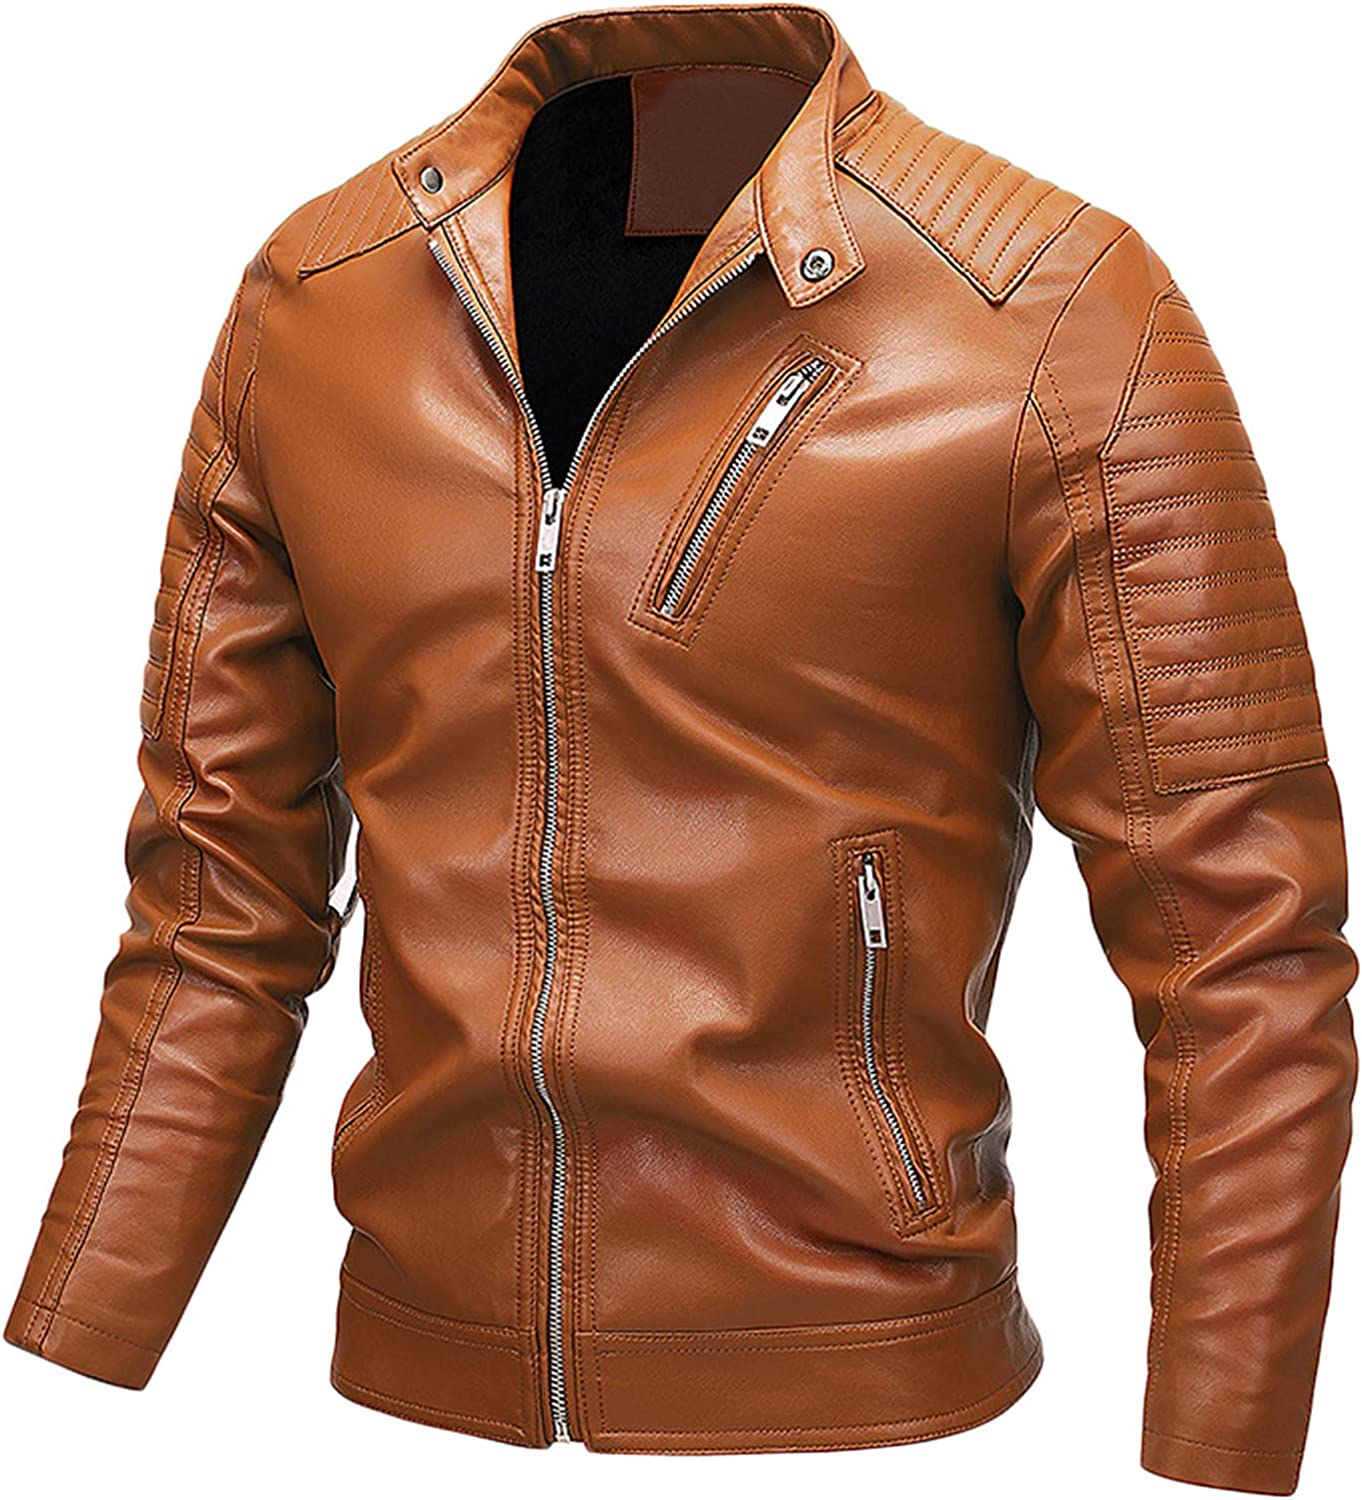 Mens Motorcycle Jacket,Men's Autumn And Winter Leisure Cashmere Zipper Stand Collar Pocket Leather Coat Jacket Jacket